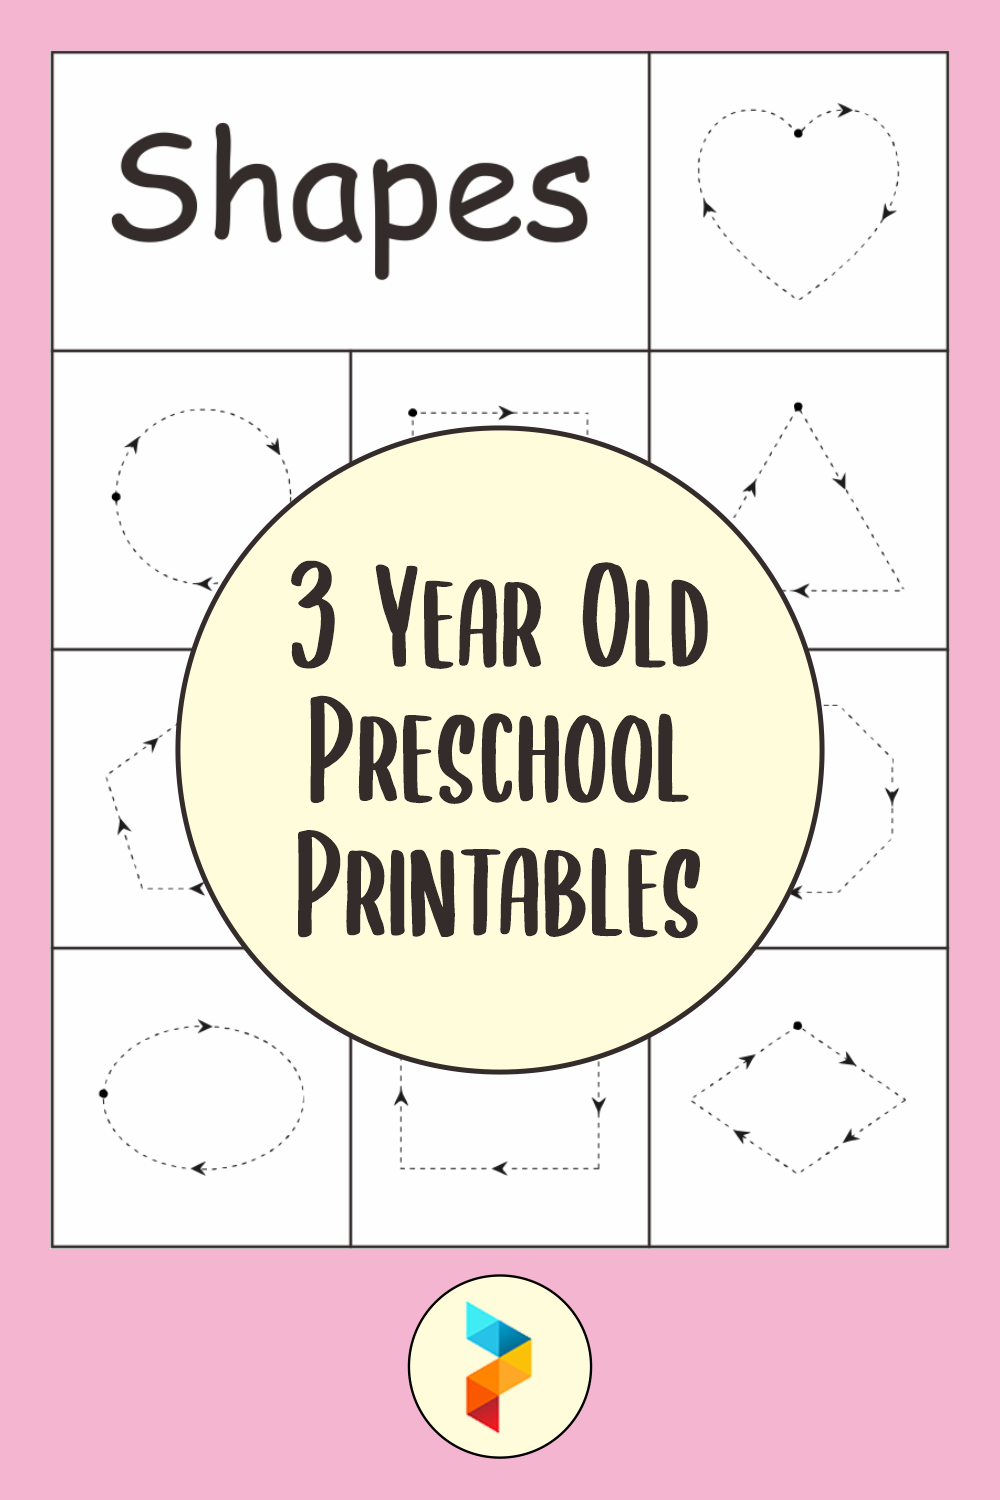 8 Best 3 Year Old Preschool Printables - printablee.com